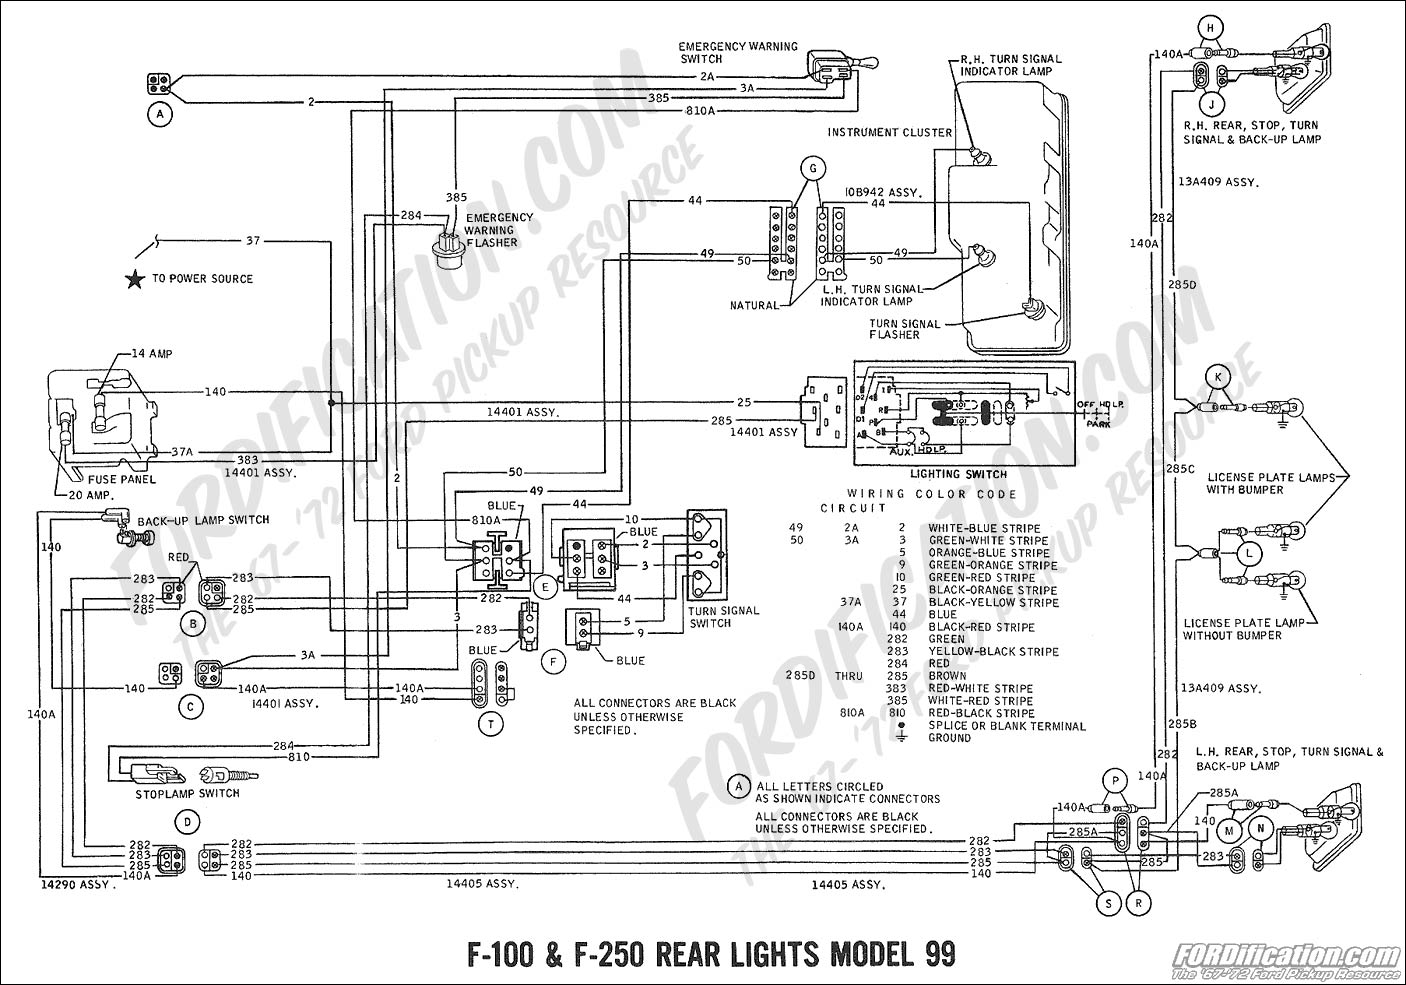 99 f350 trailer brake wiring diagram for garage door opener sensors 2000 rear lights free engine